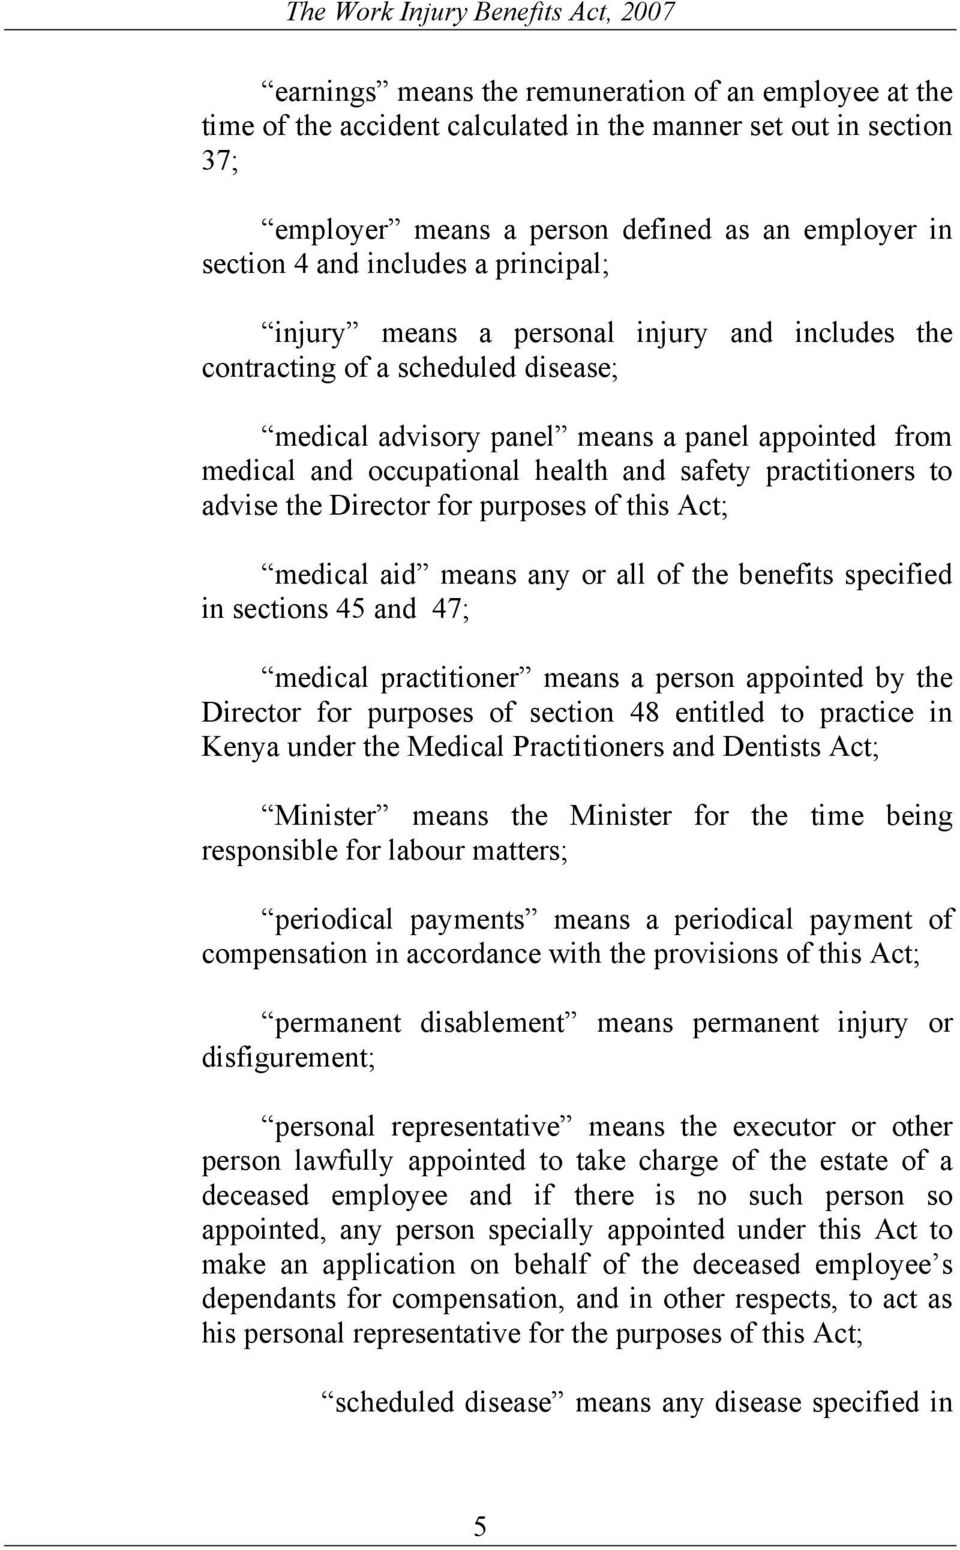 practitioners to advise the Director for purposes of this Act; medical aid means any or all of the benefits specified in sections 45 and 47; medical practitioner means a person appointed by the